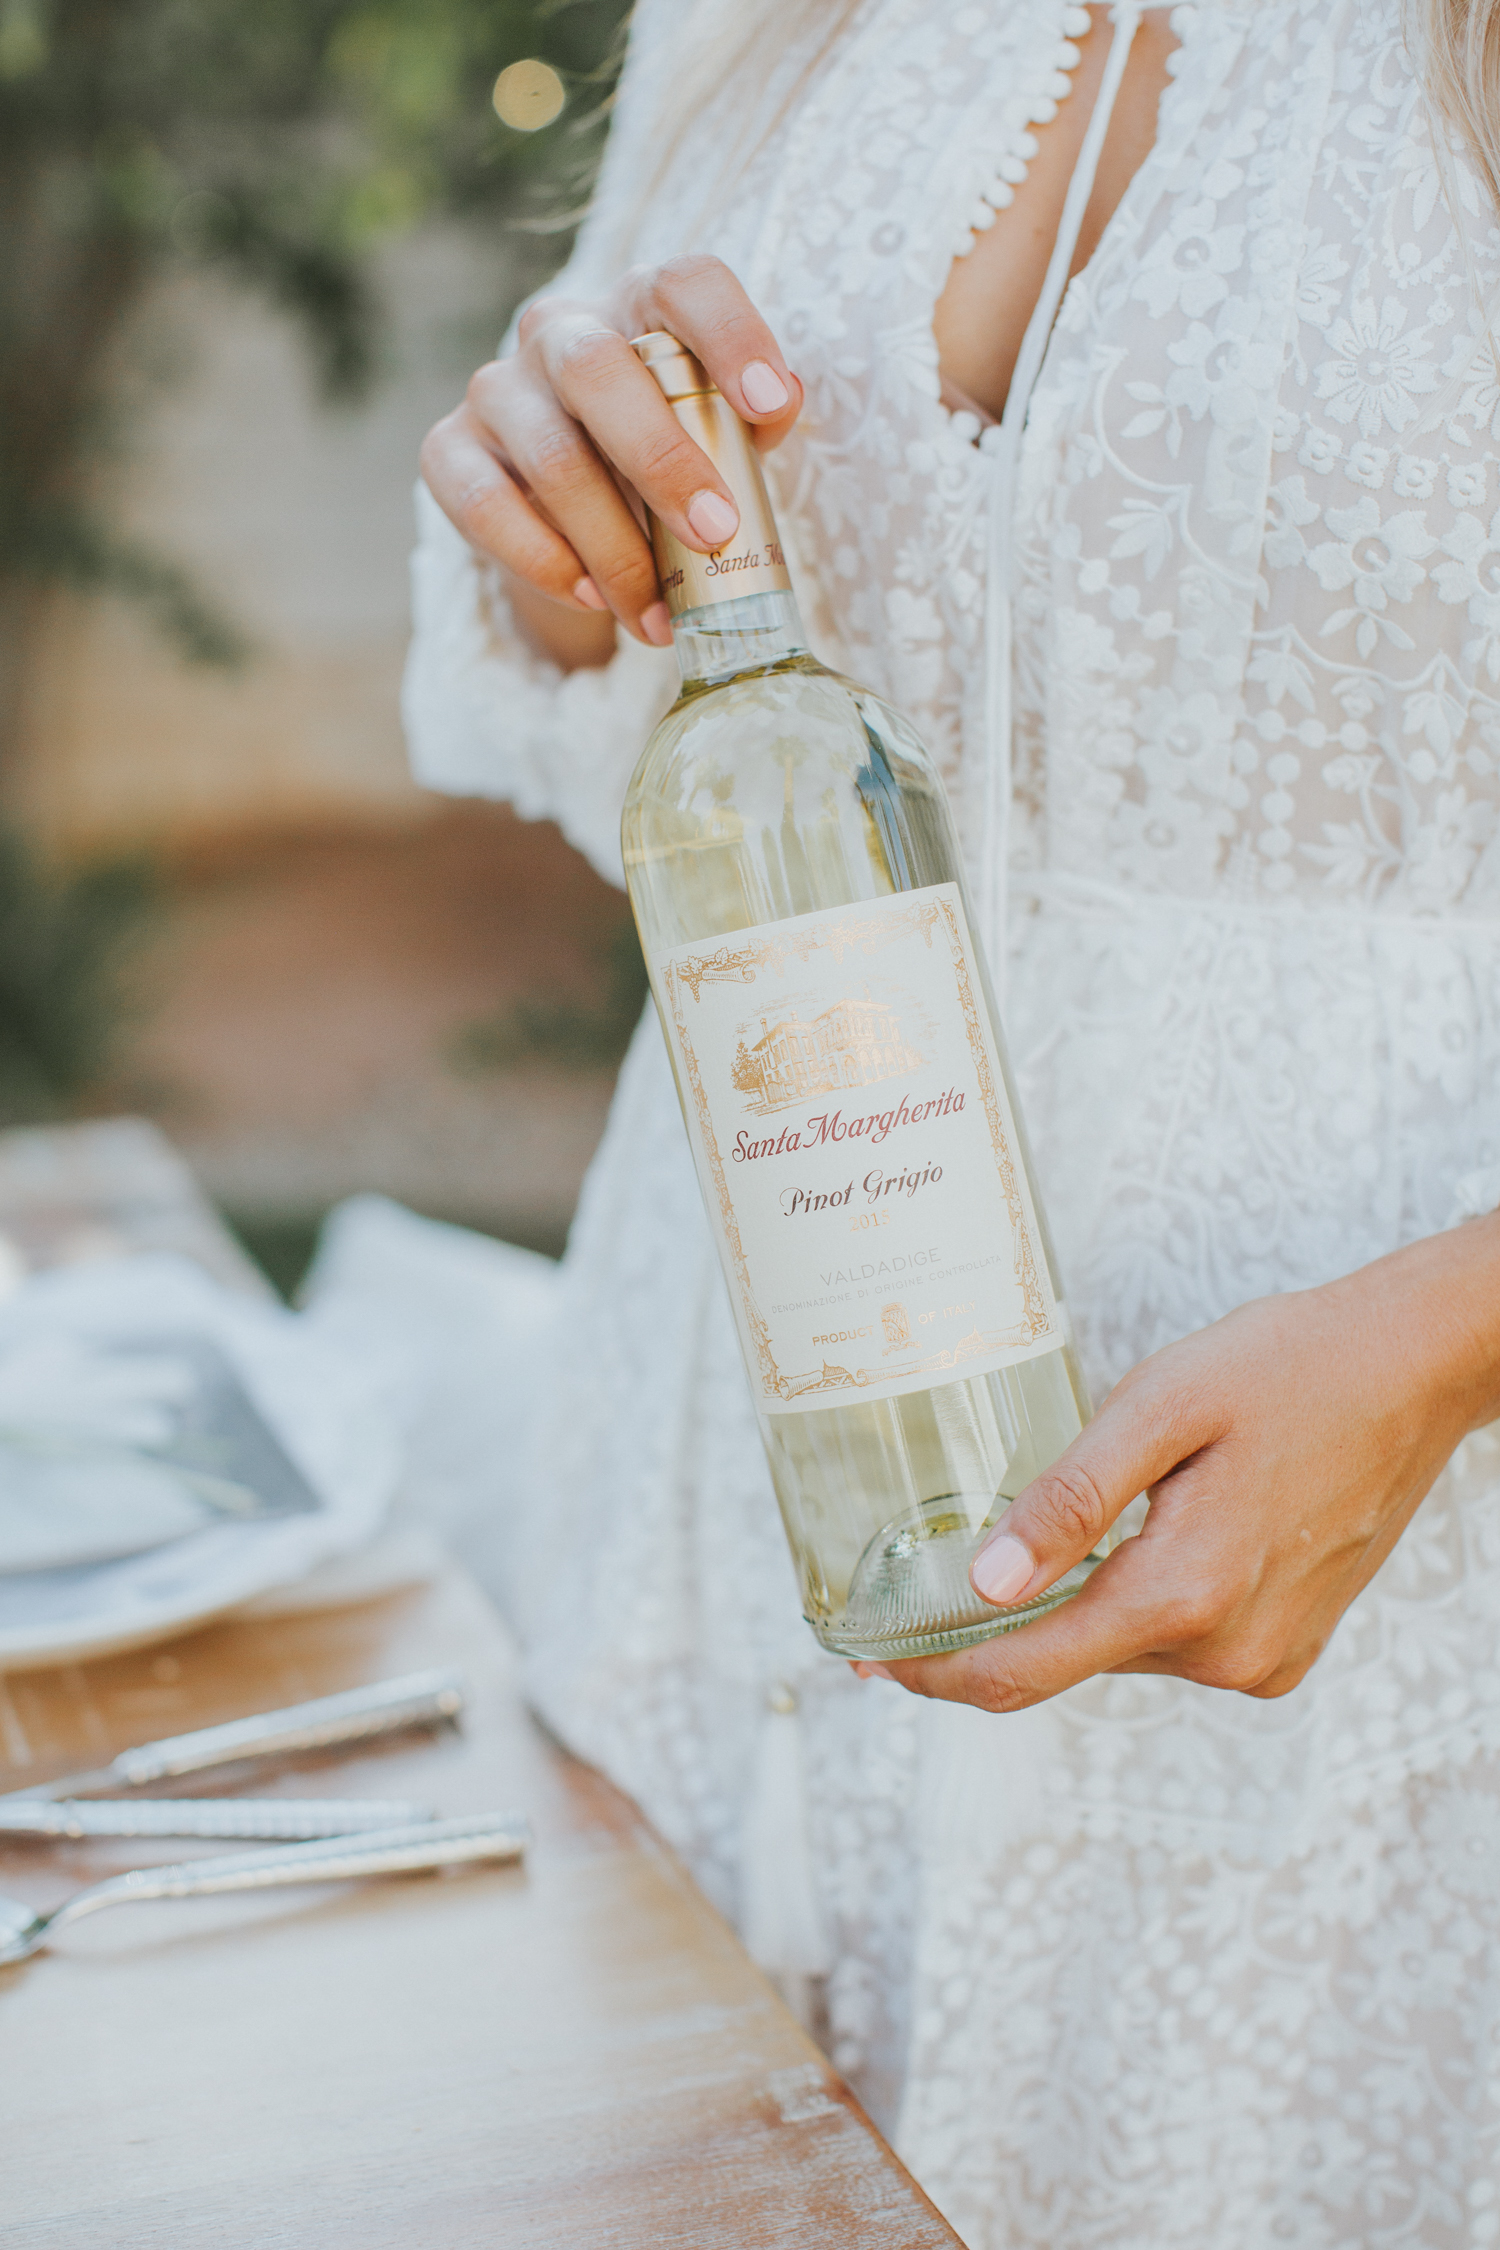 Pinot Grigio, perfect for a warm summer dinner party   A Fabulous Fete